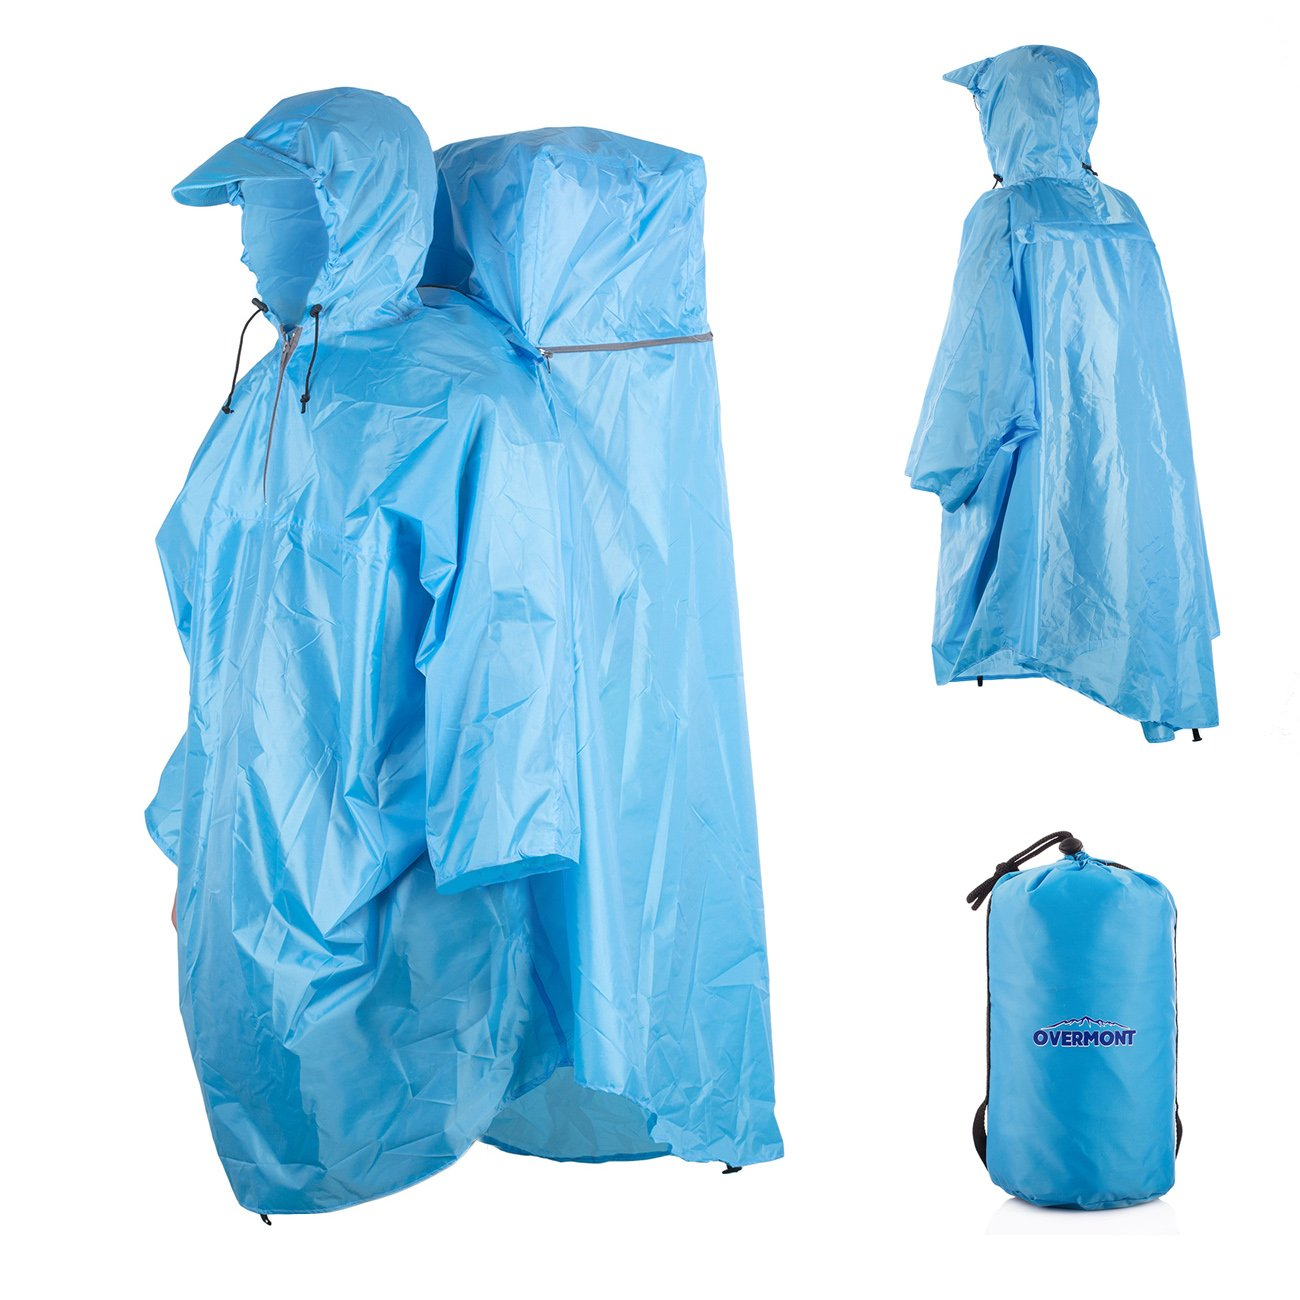 Overmont One Piece Waterproof Raincoat Rain Poncho with Hoods Backpack Rain Cover for Outdoor Hiking Travel Camping (Blue)